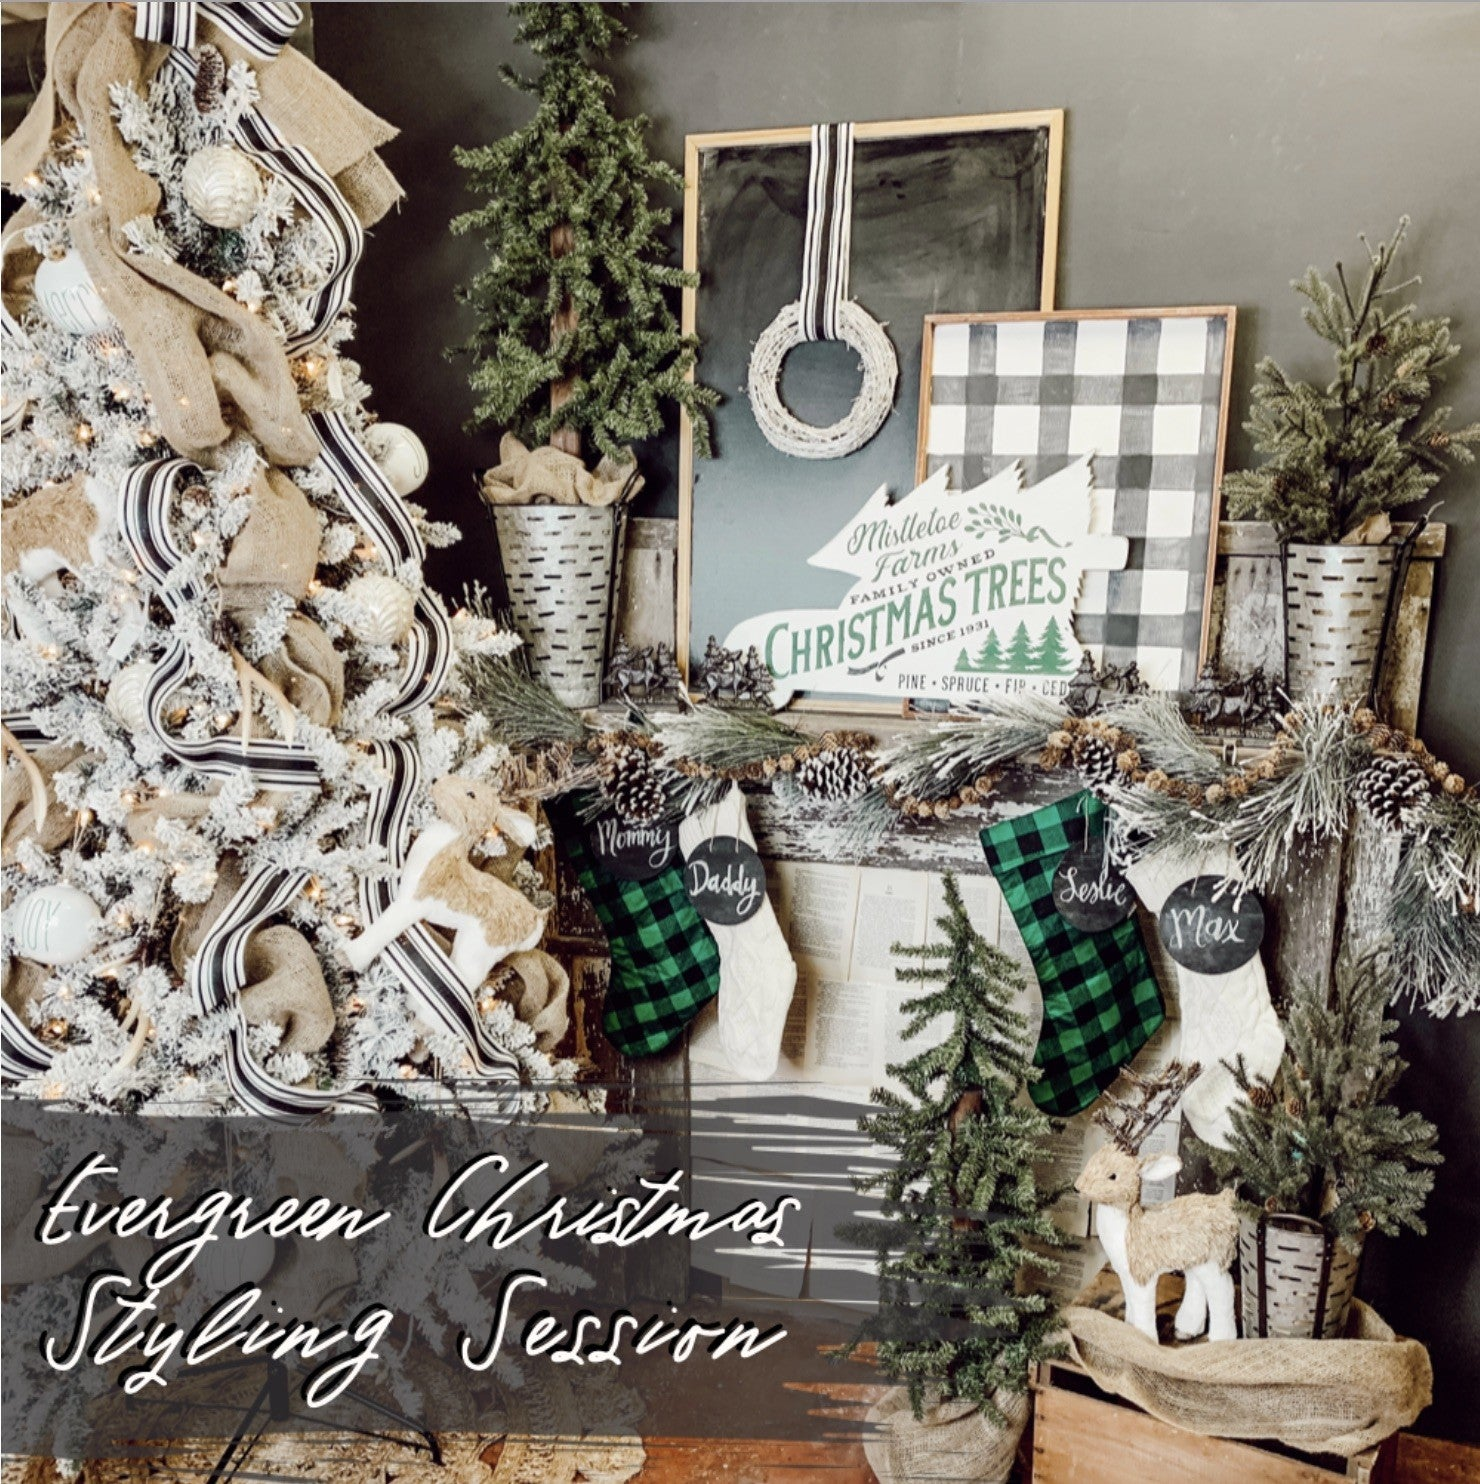 Evergreen Christmas Styling Session